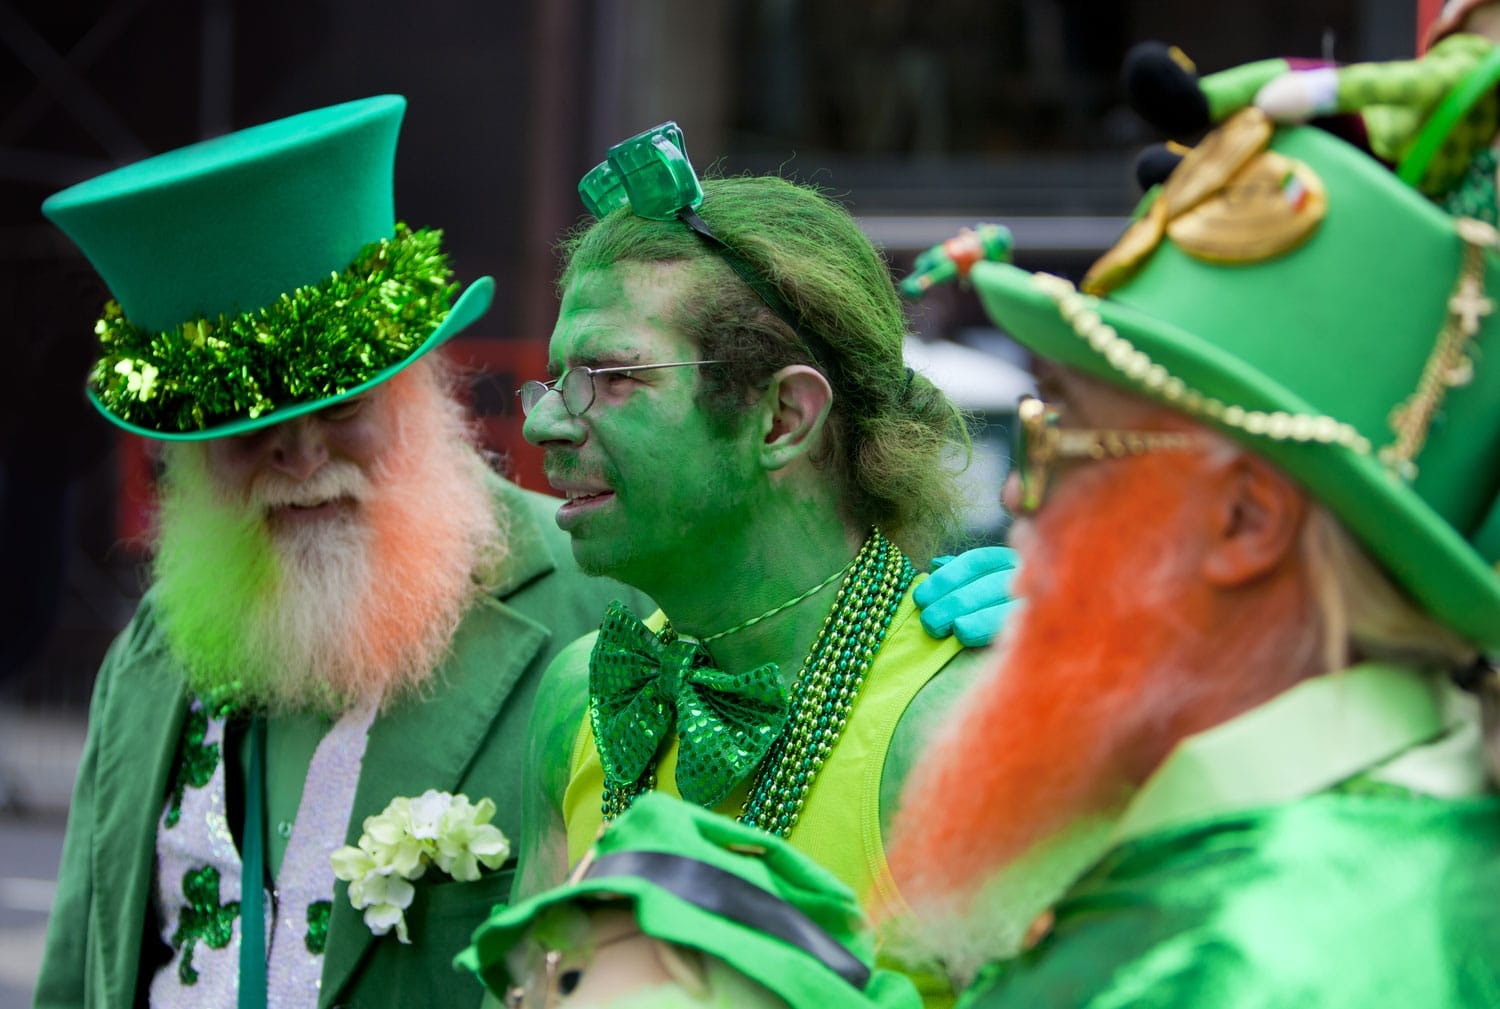 hree men in funny leprechaun costumes at the St. Patrick's Day Parade